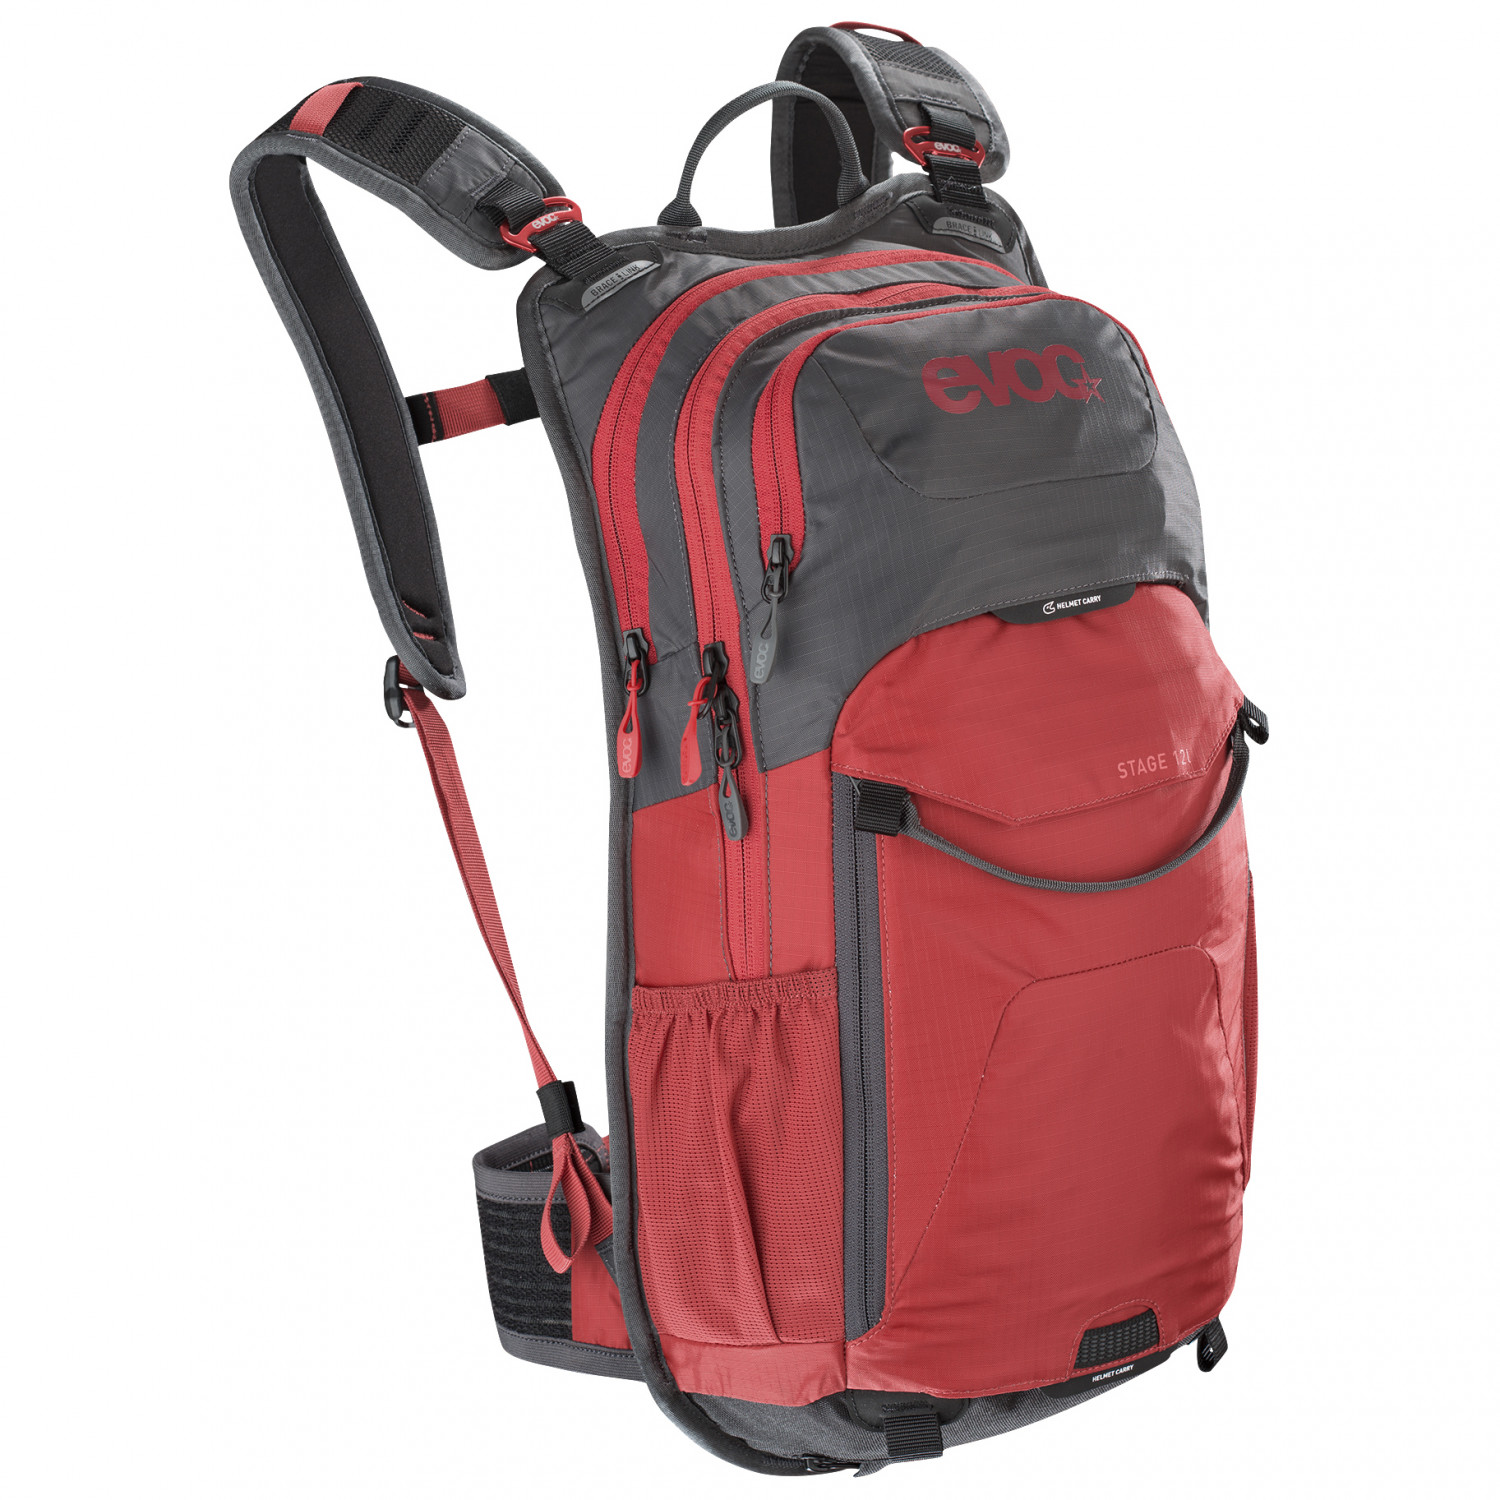 d22a27c35 Evoc Stage 12L - Cycling Backpack | Free UK Delivery | Alpinetrek.co.uk